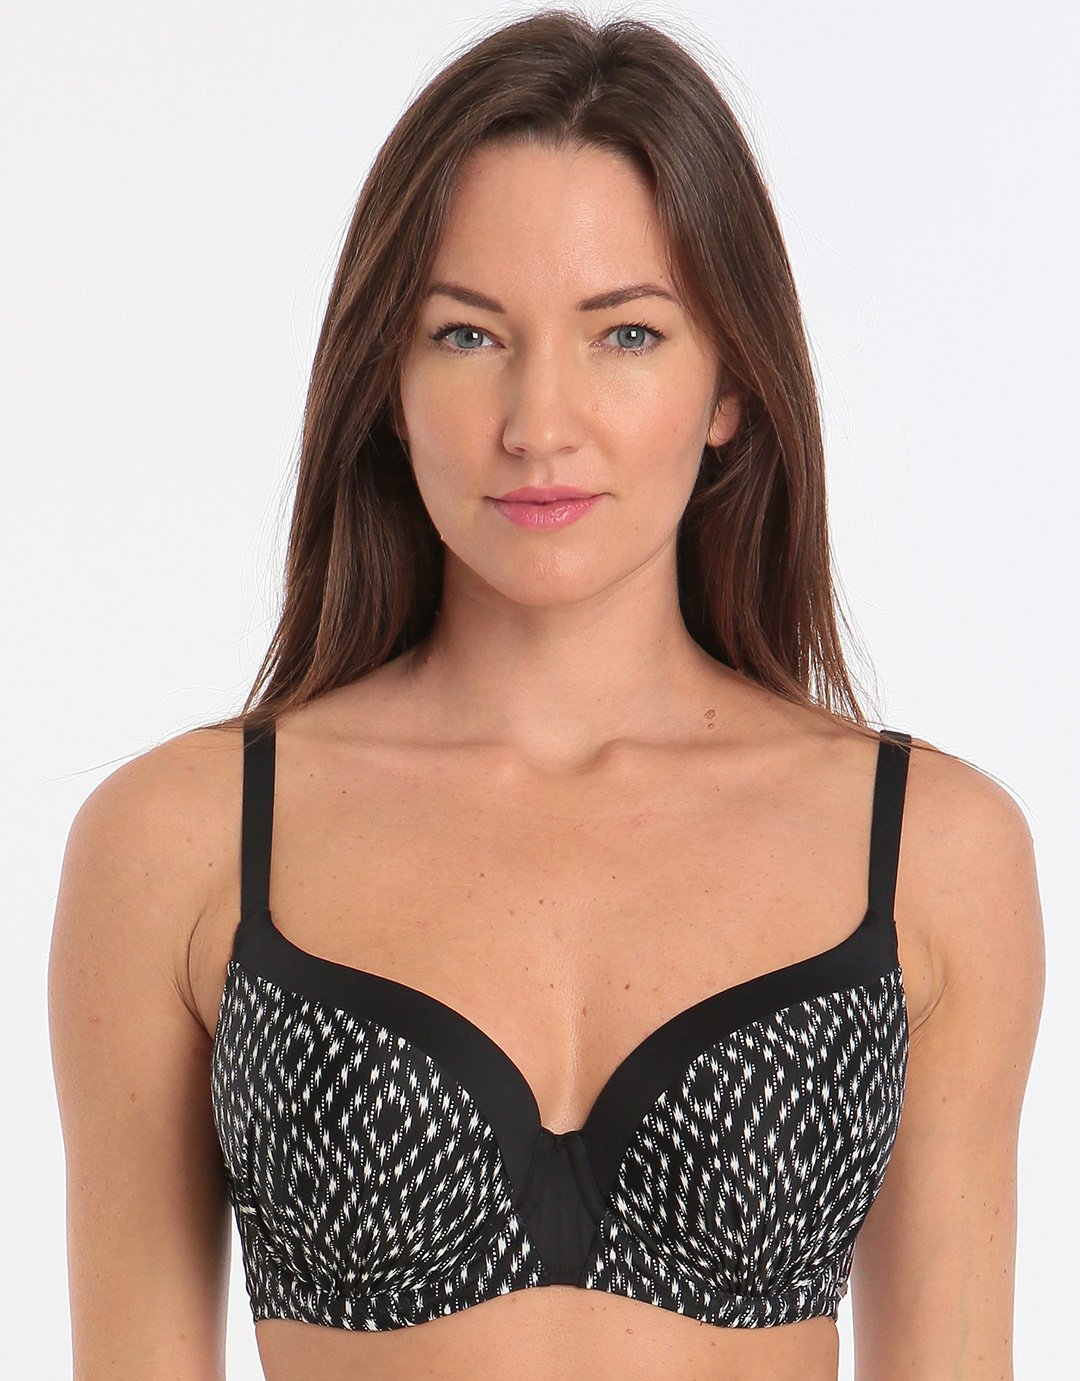 d3d2bdd7e6 Fantasie Byron Bay UW Moulded Bikini Top - Black Cream